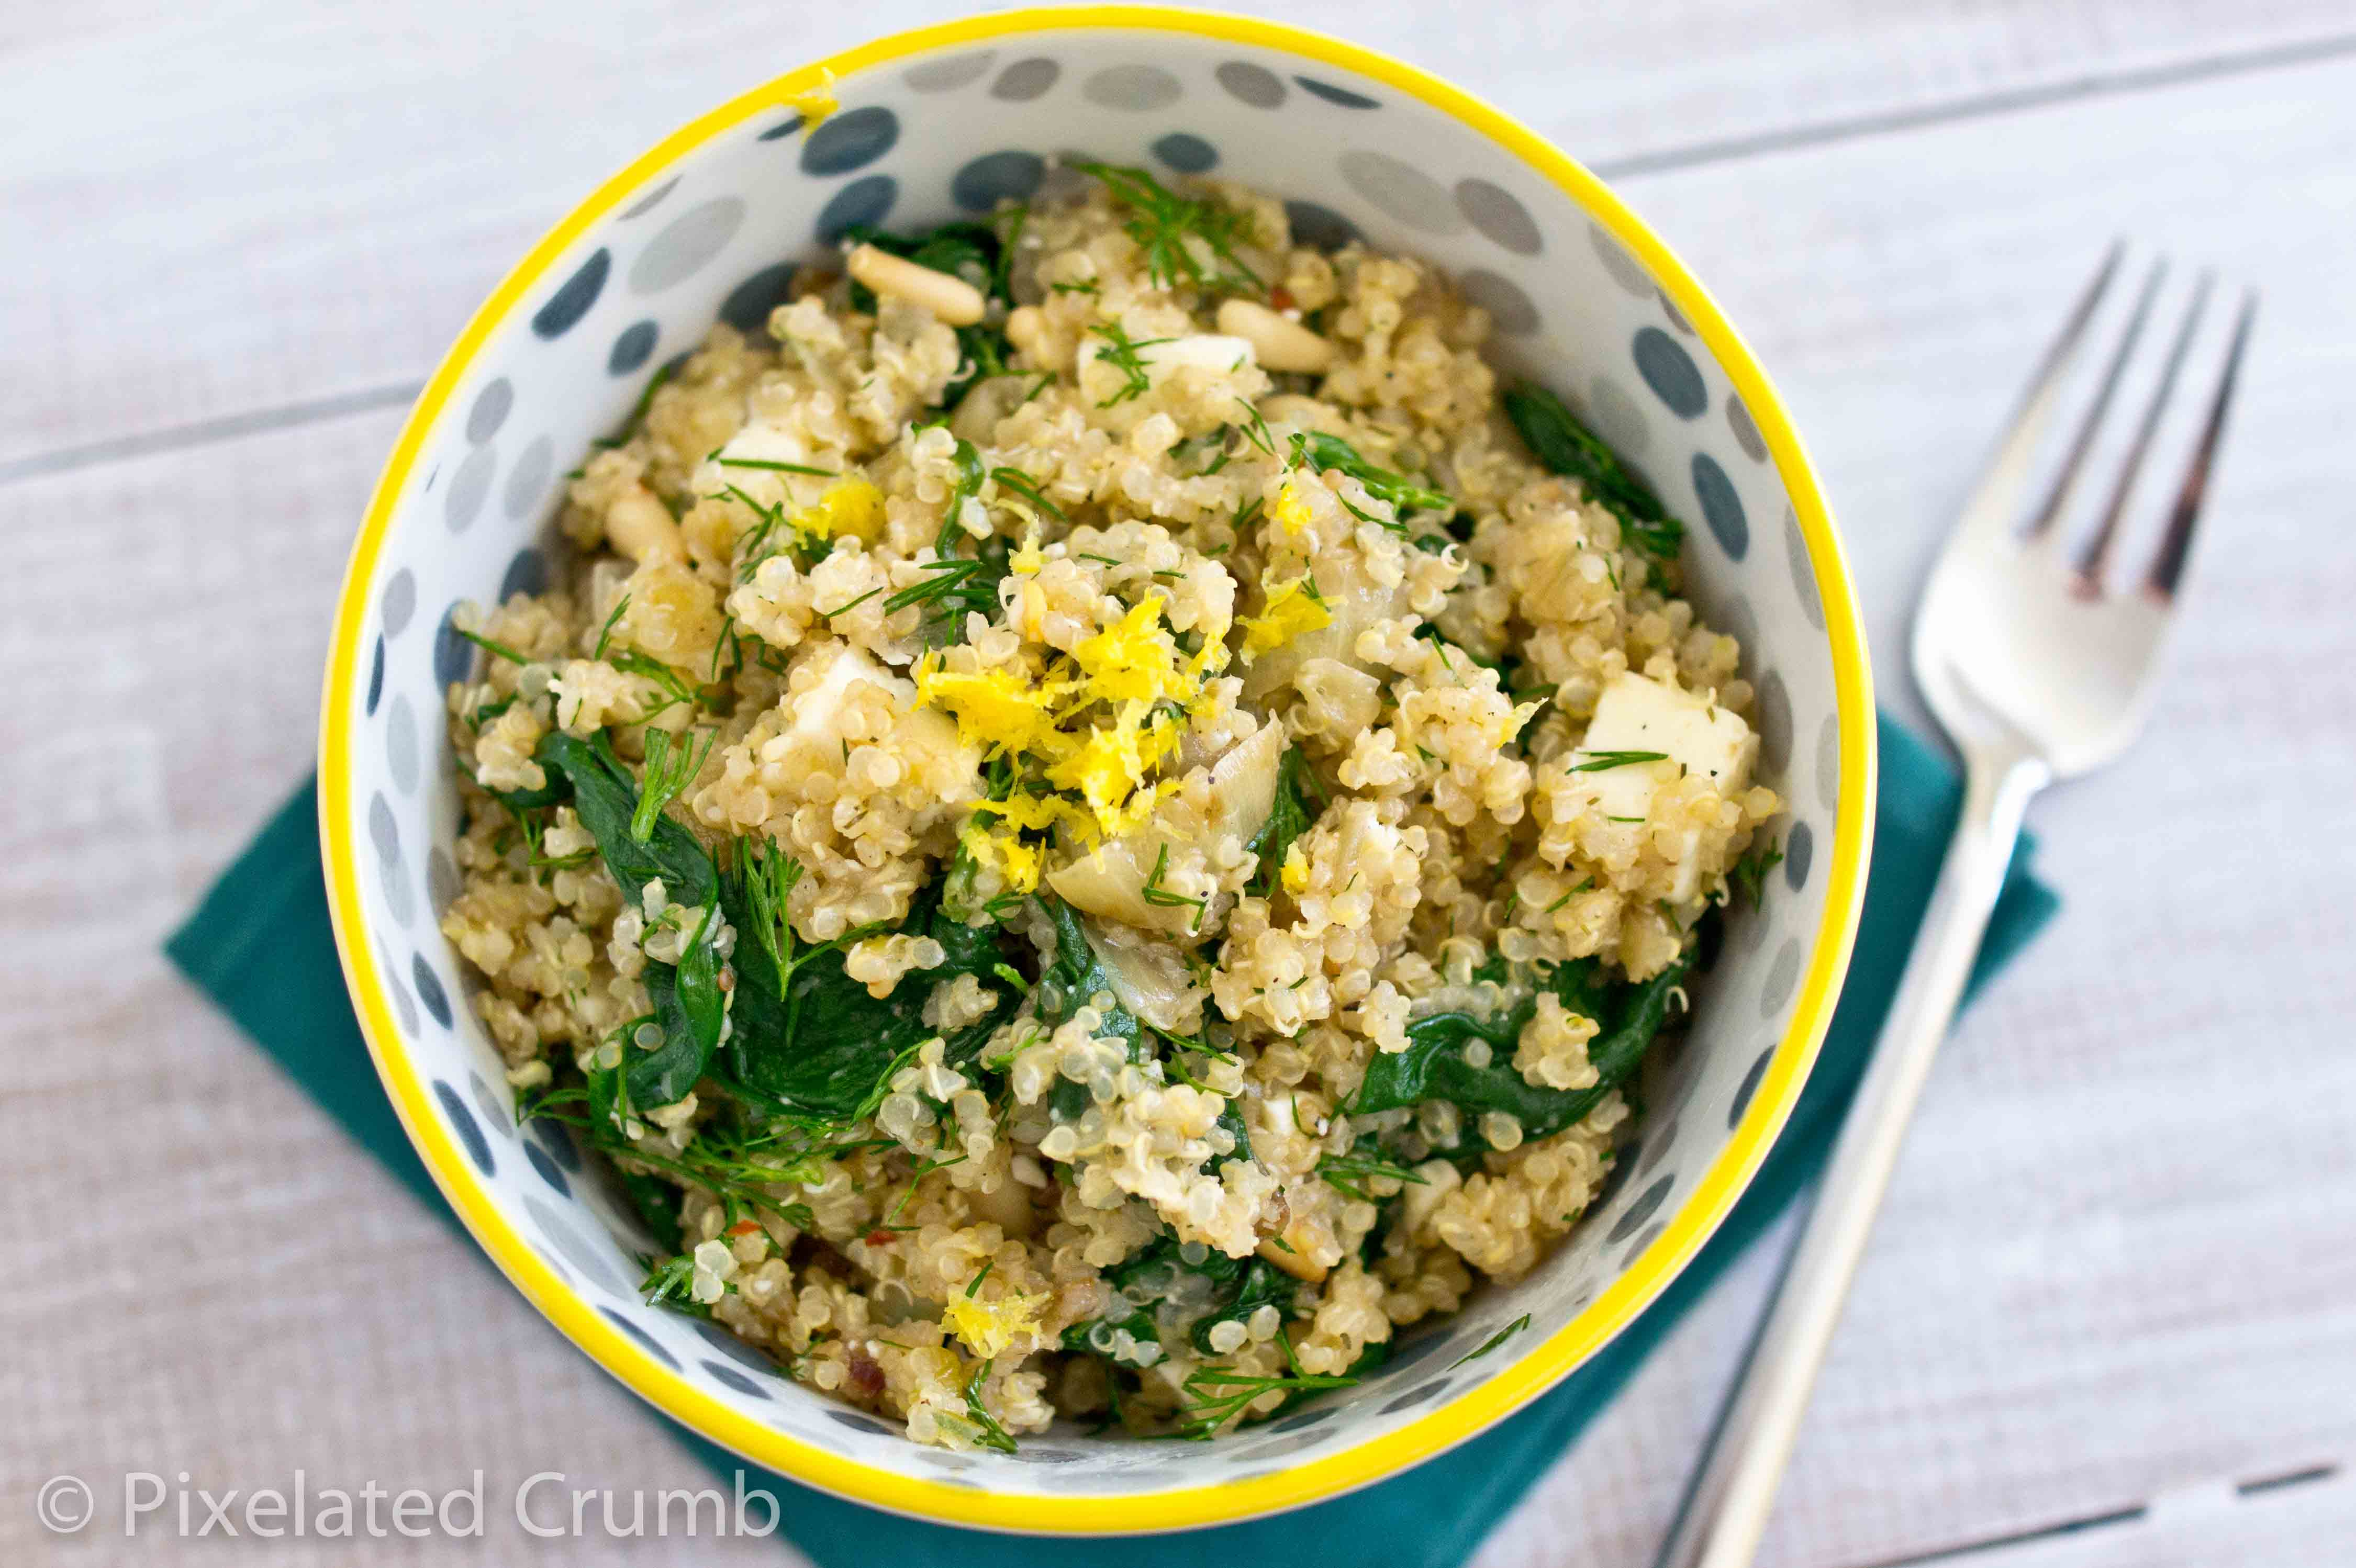 Quinoa Salad with Spinach, Feta, and Dill | Pixelated Crumb